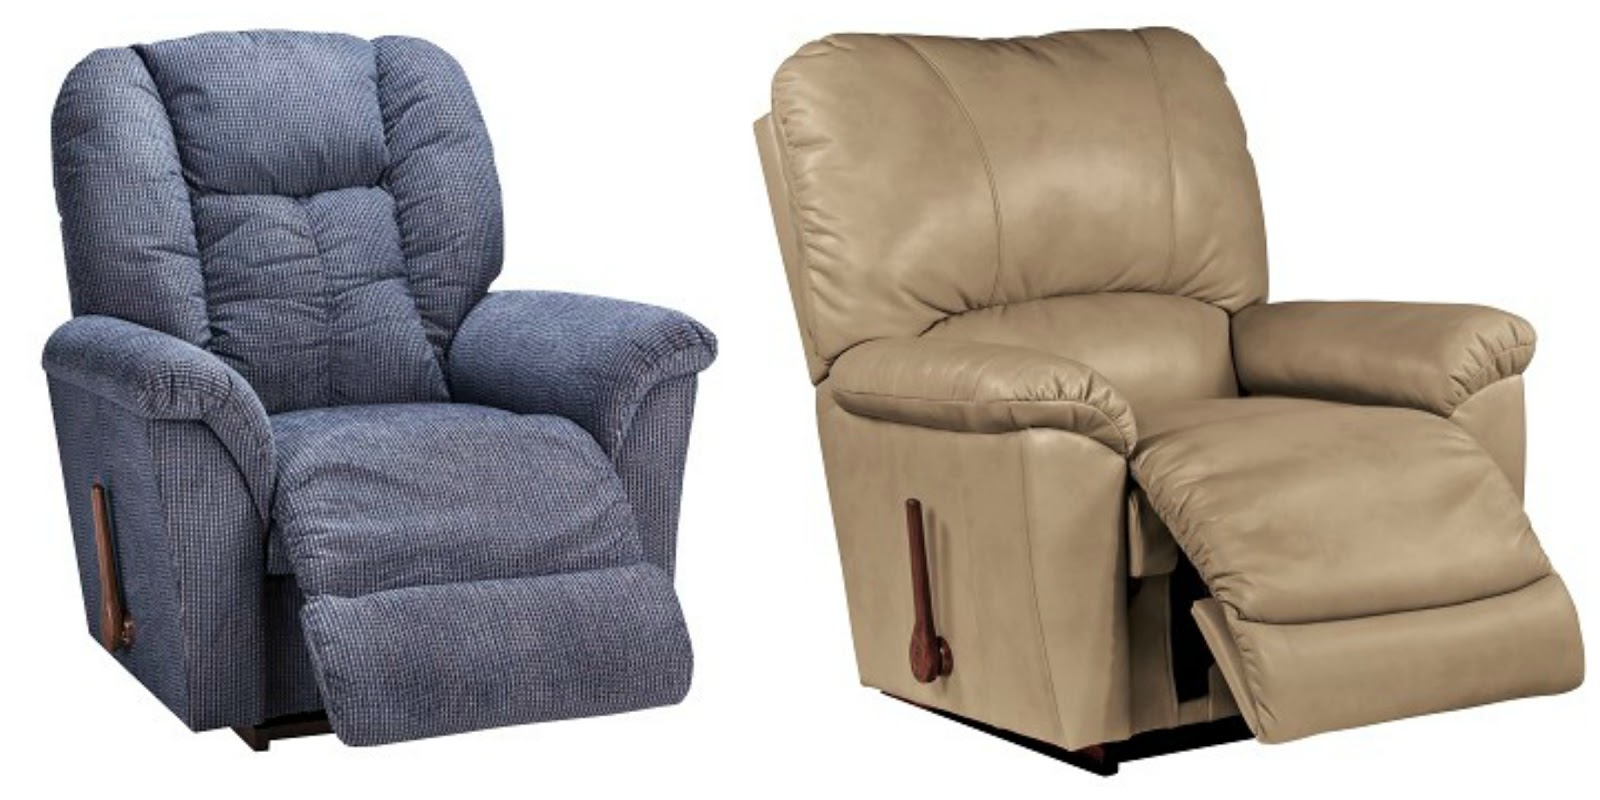 Slumberland Accent Chairs With Arms.Slumberland Furniture Store Osage Beach Mo Our Memorial Weekend